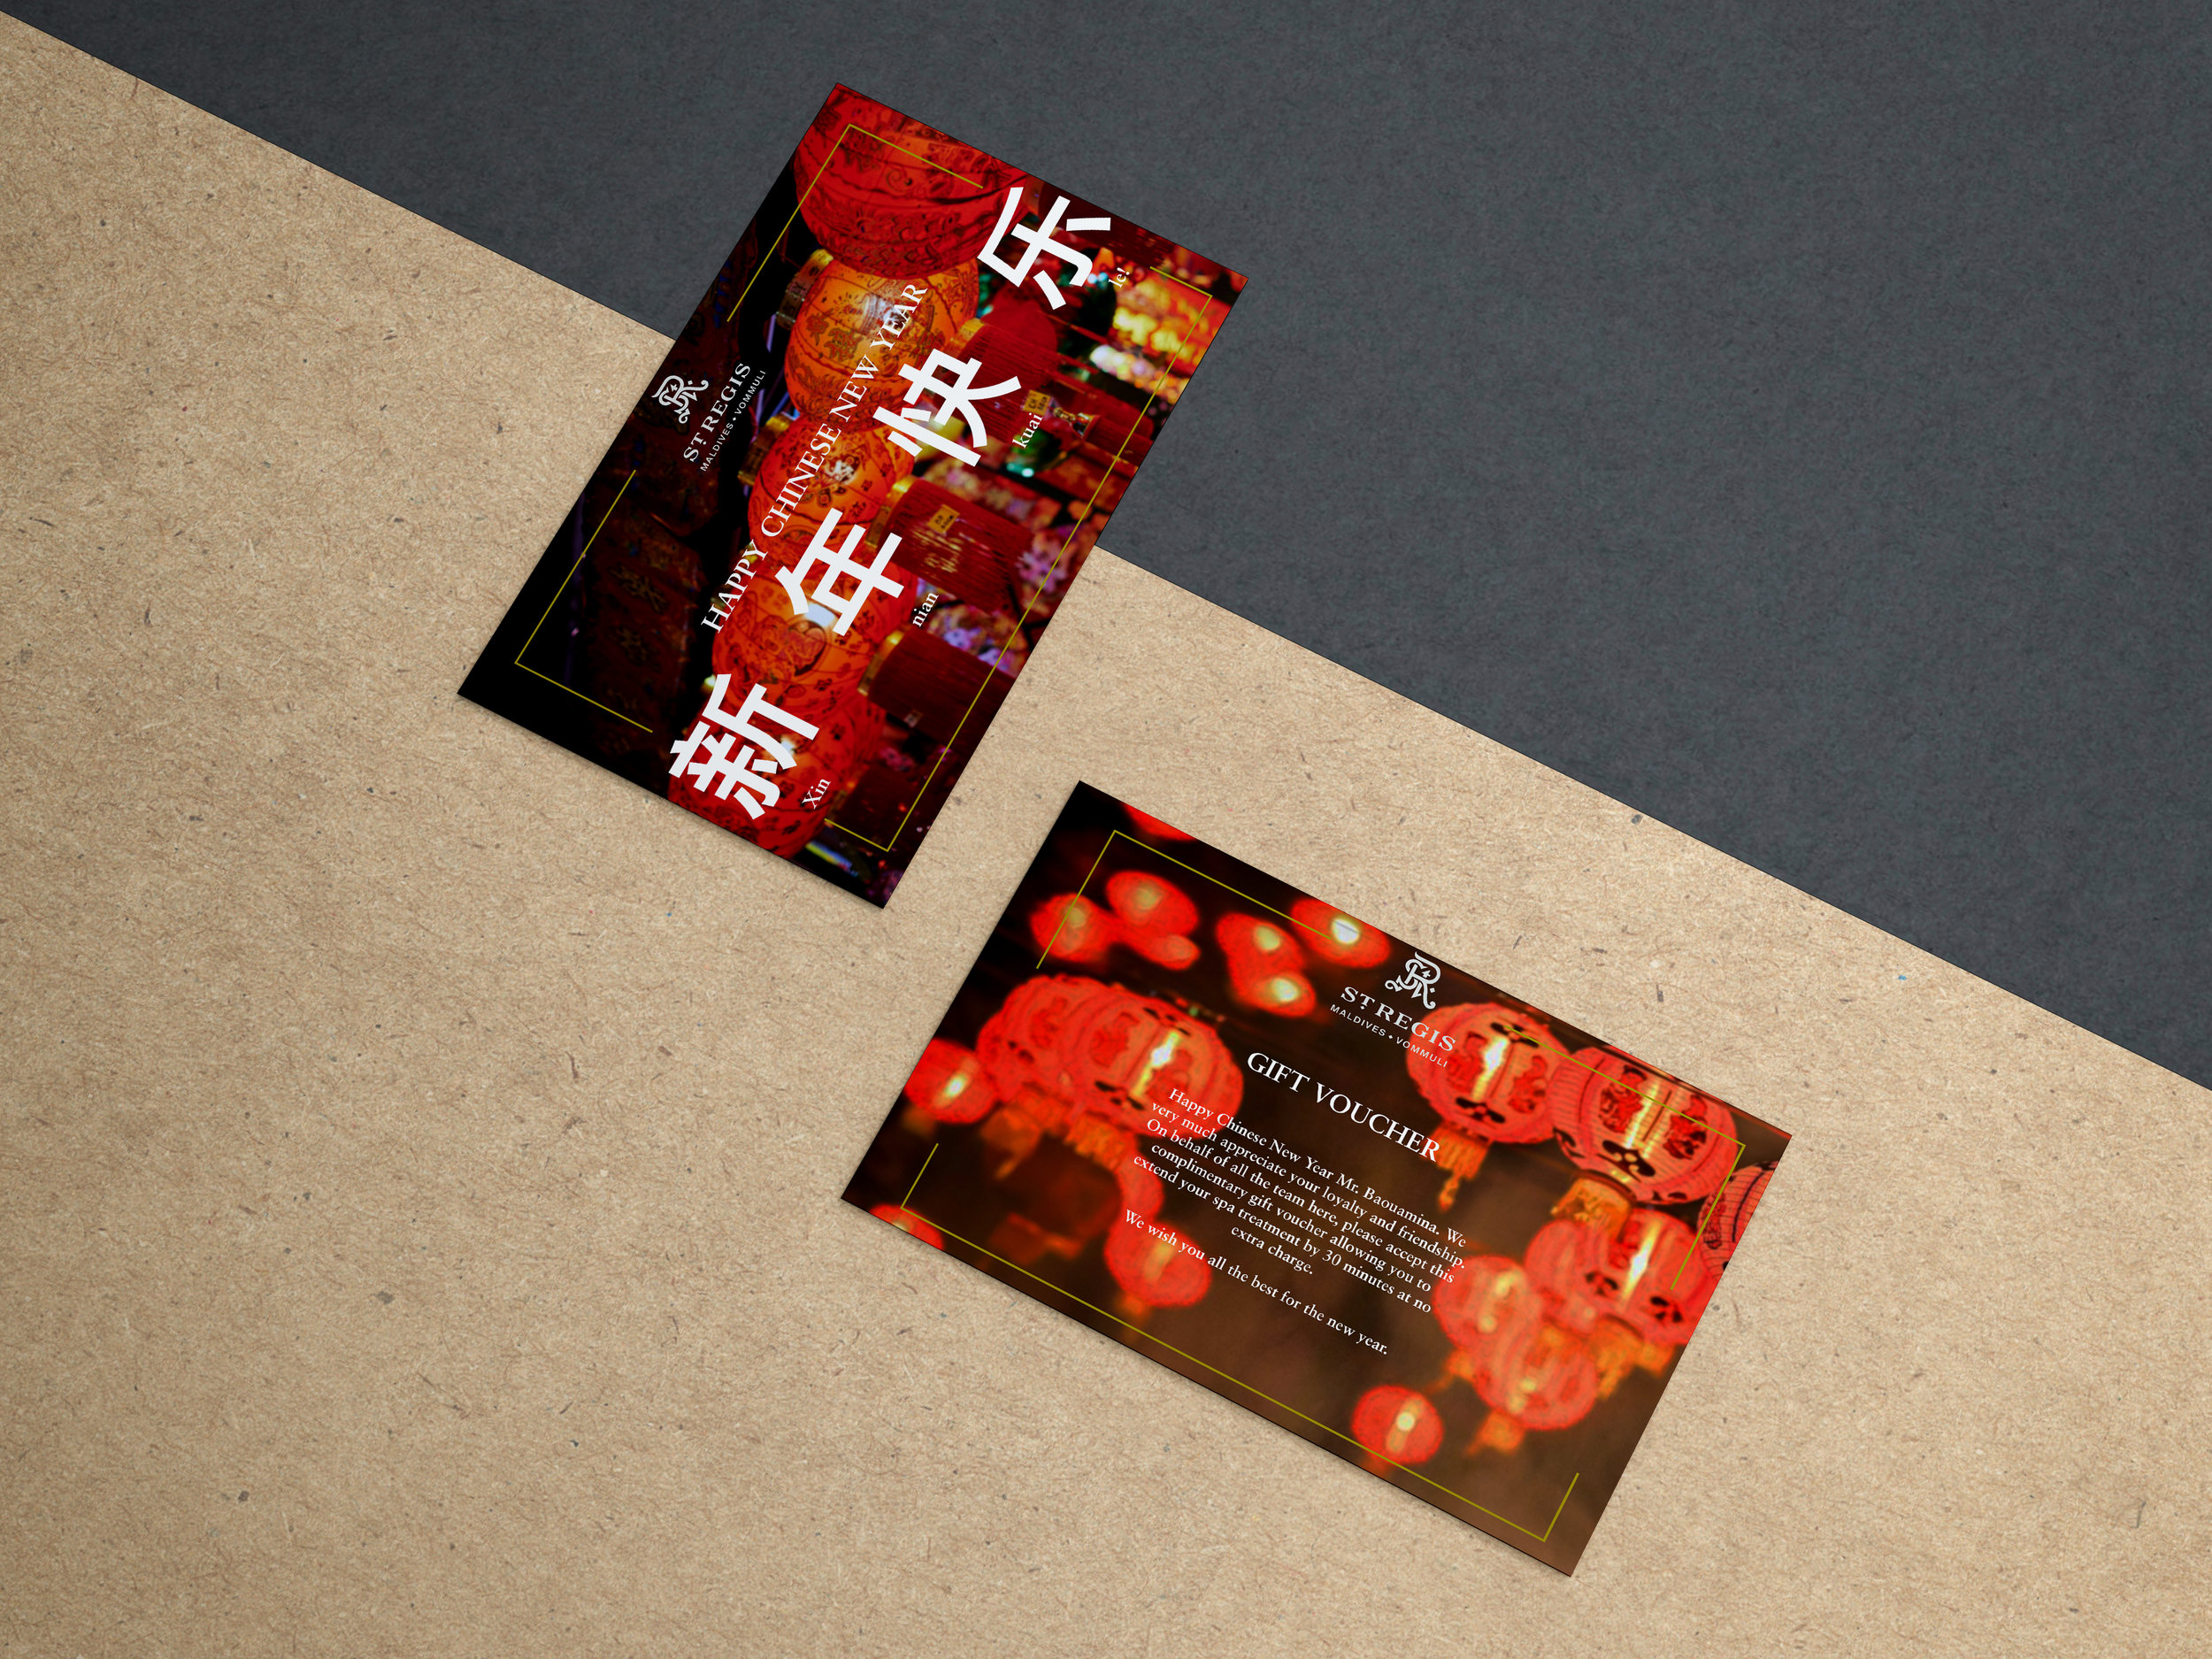 Free Business Cards on Kraft Paper Mockup PSD.jpg